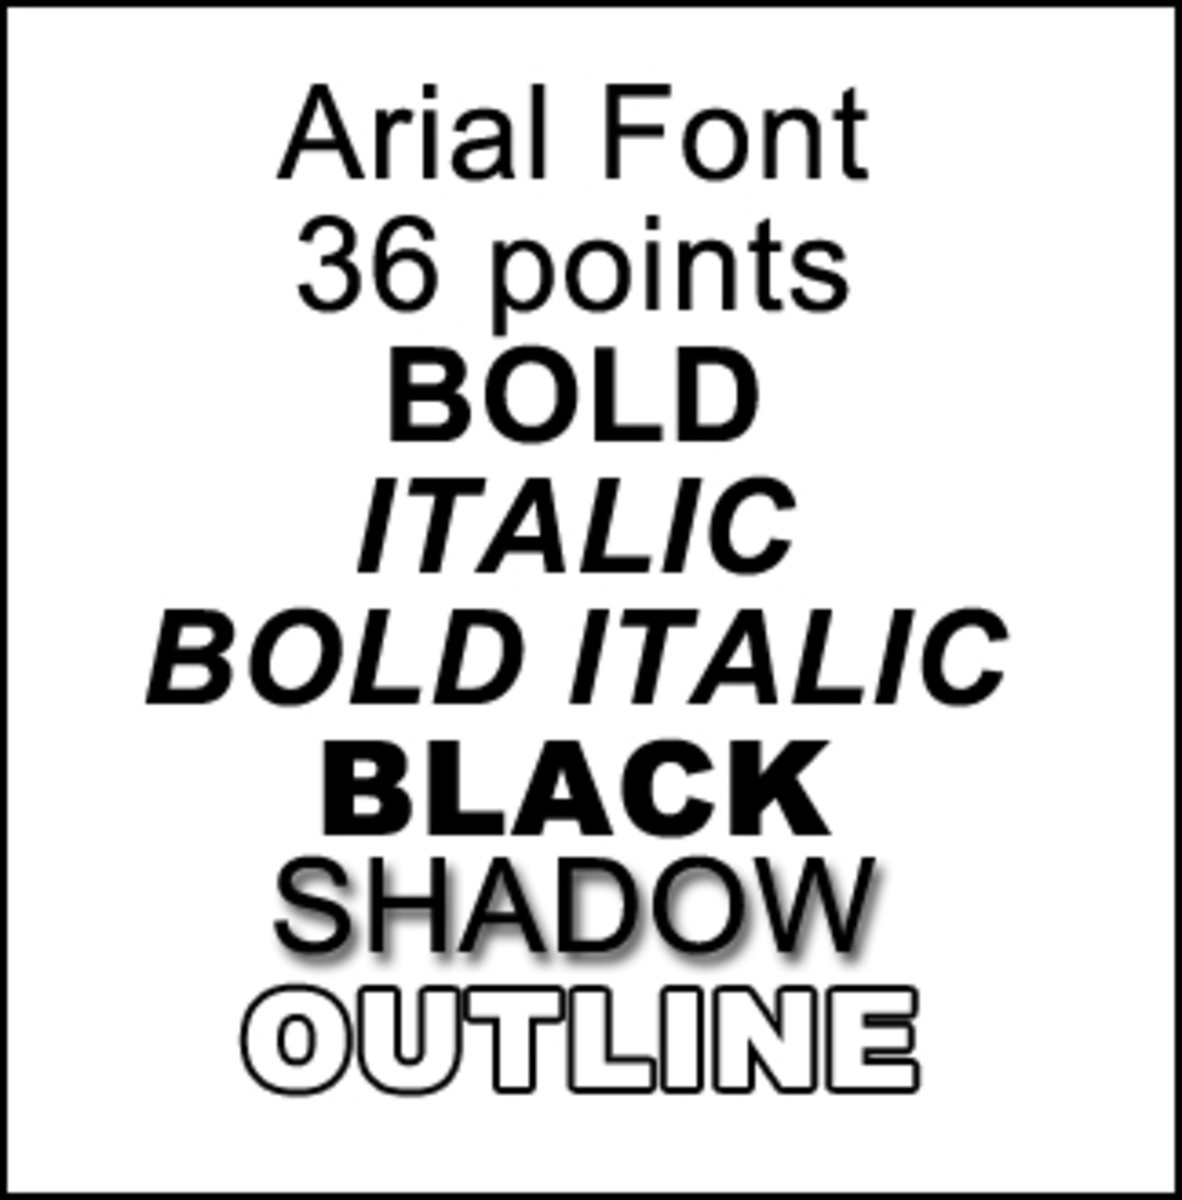 Note: Arial does not come with a shadow or outline style, I made these with filters in Photoshop for examples.